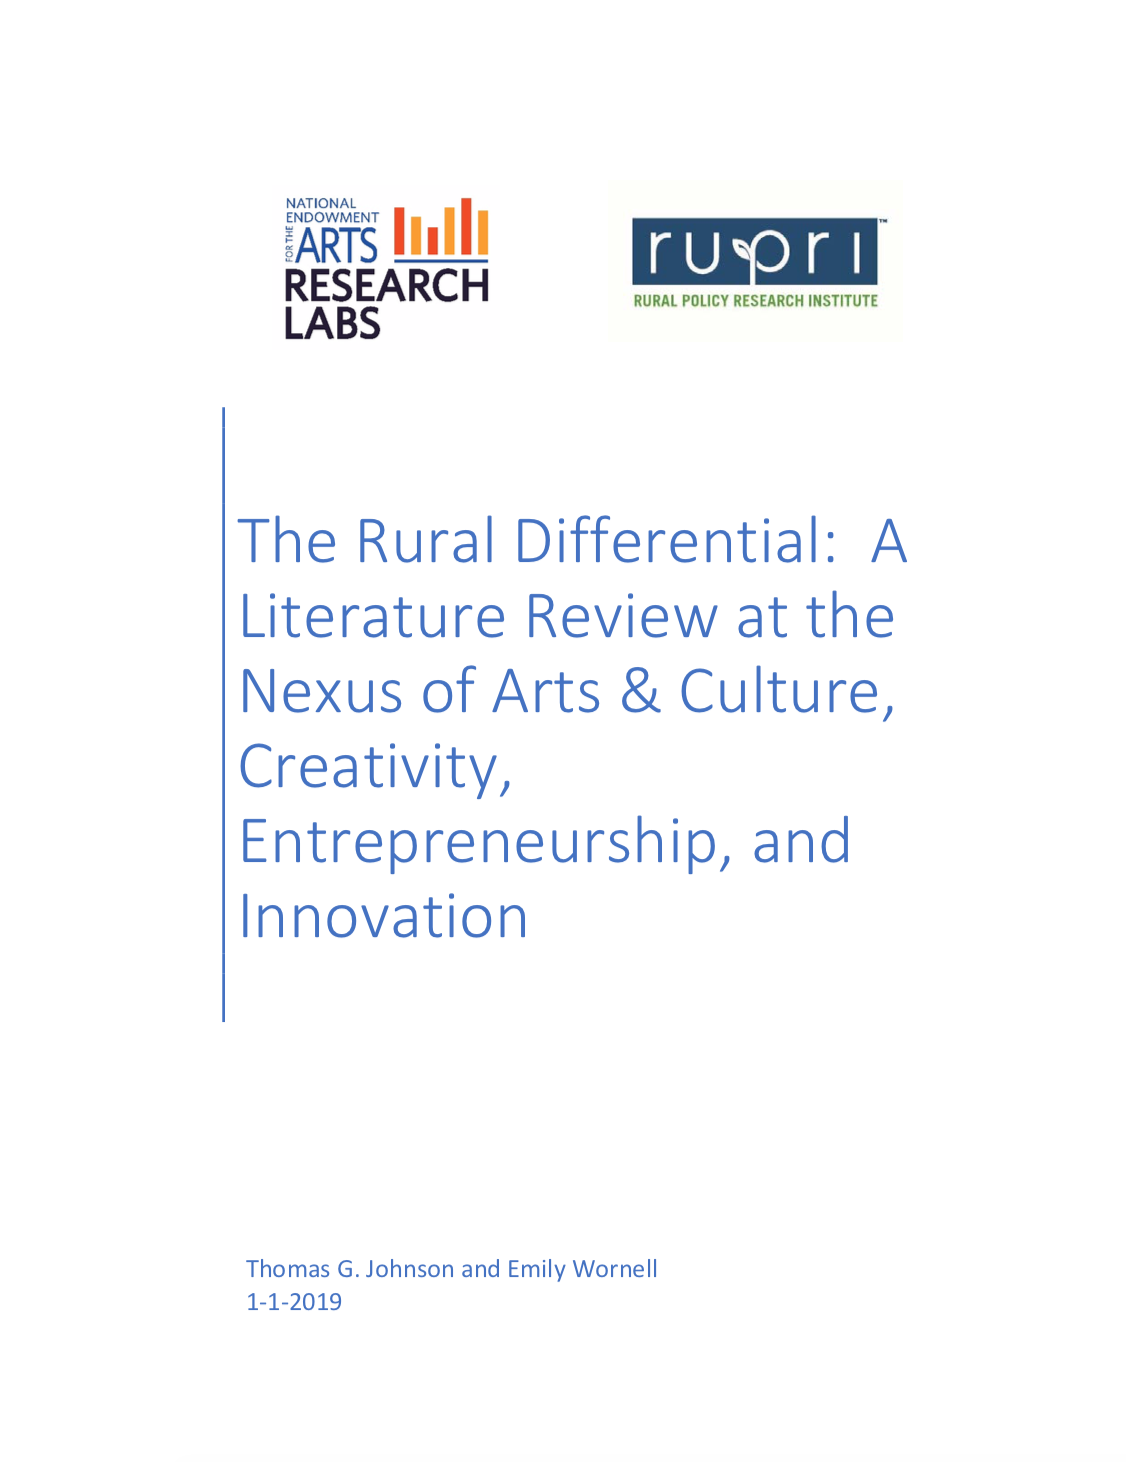 The Rural Differential Lit Review (Cover Image)